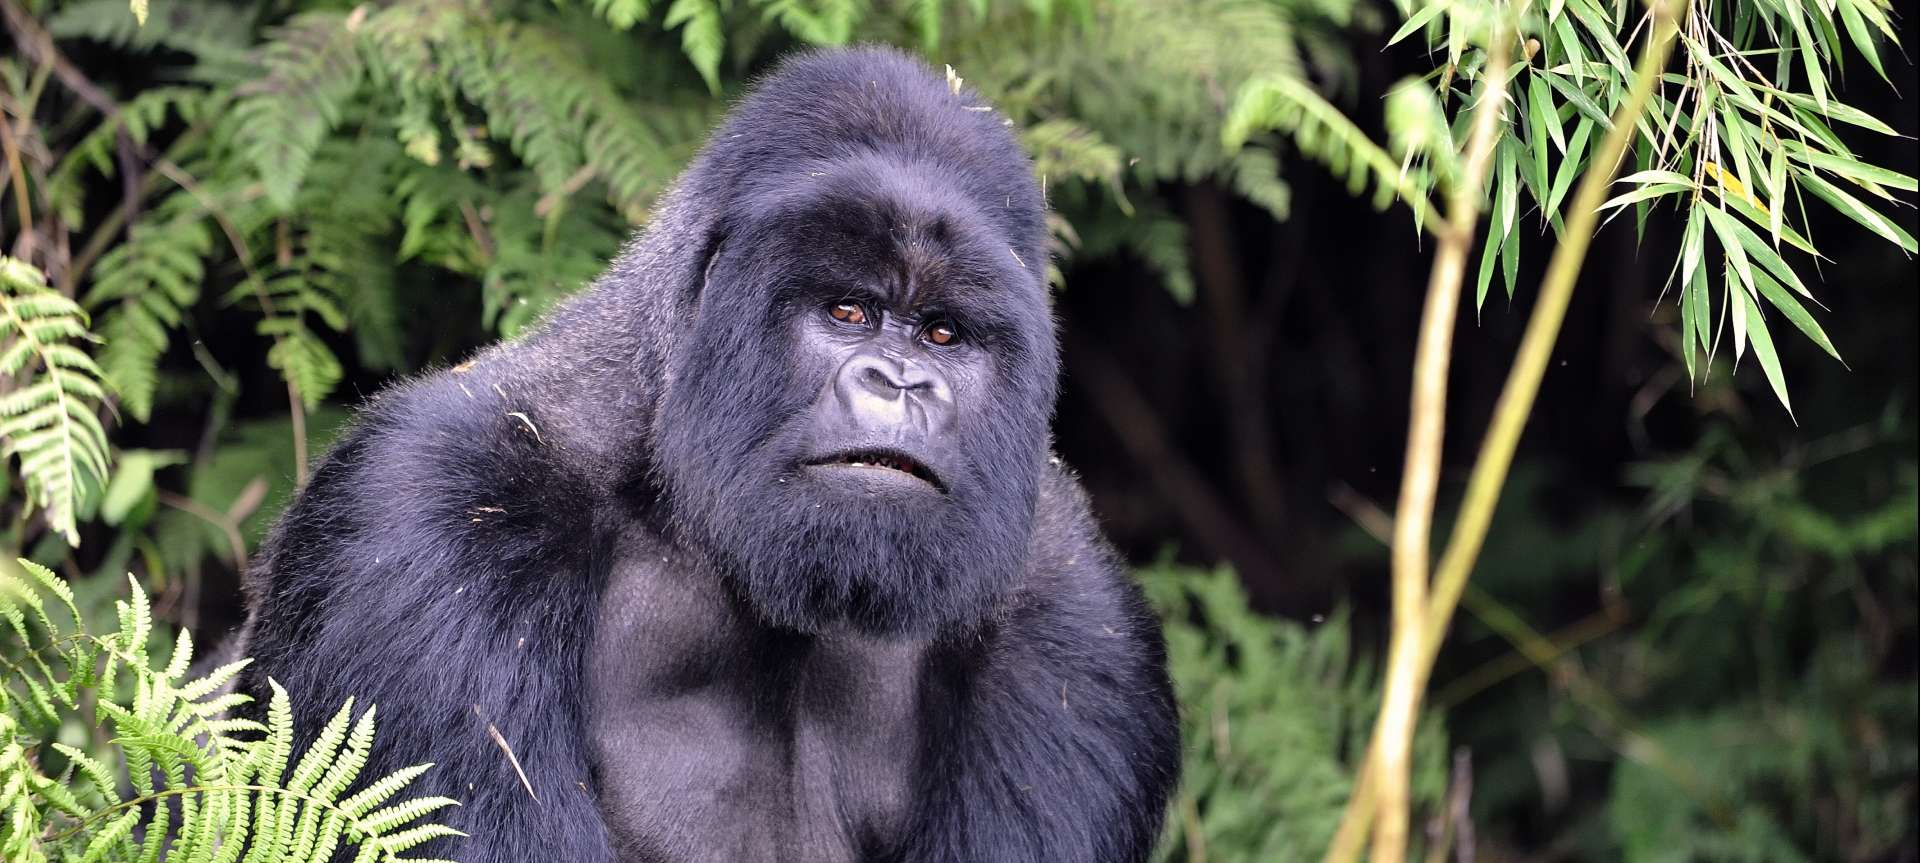 The mountain gorilla of Rwanda are incredible creatures